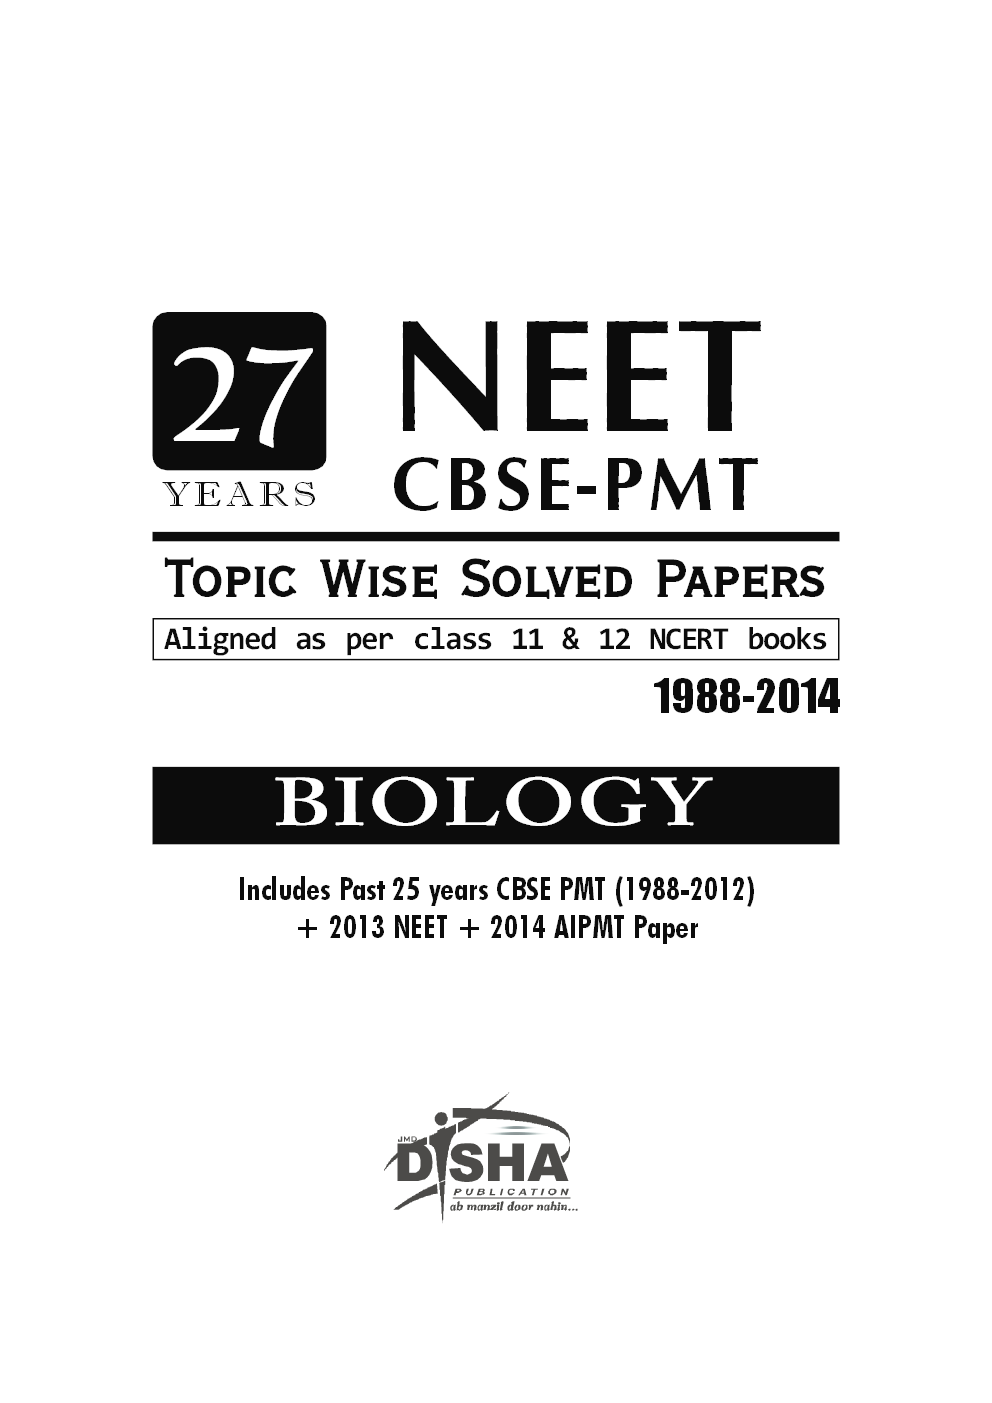 27 Years NEET CBSE-PMT Topic Wise Solved Papers1 - Page 1